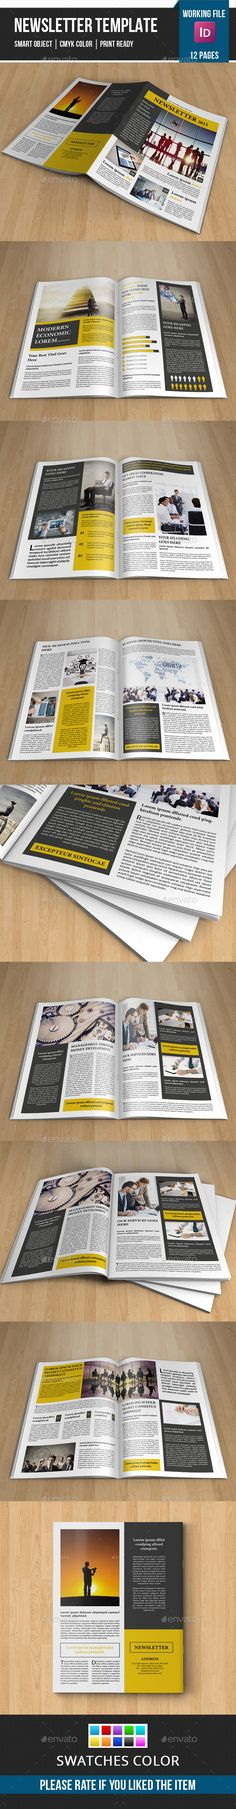 Corporate Newsletter-V06 - Newsletters Print Templates